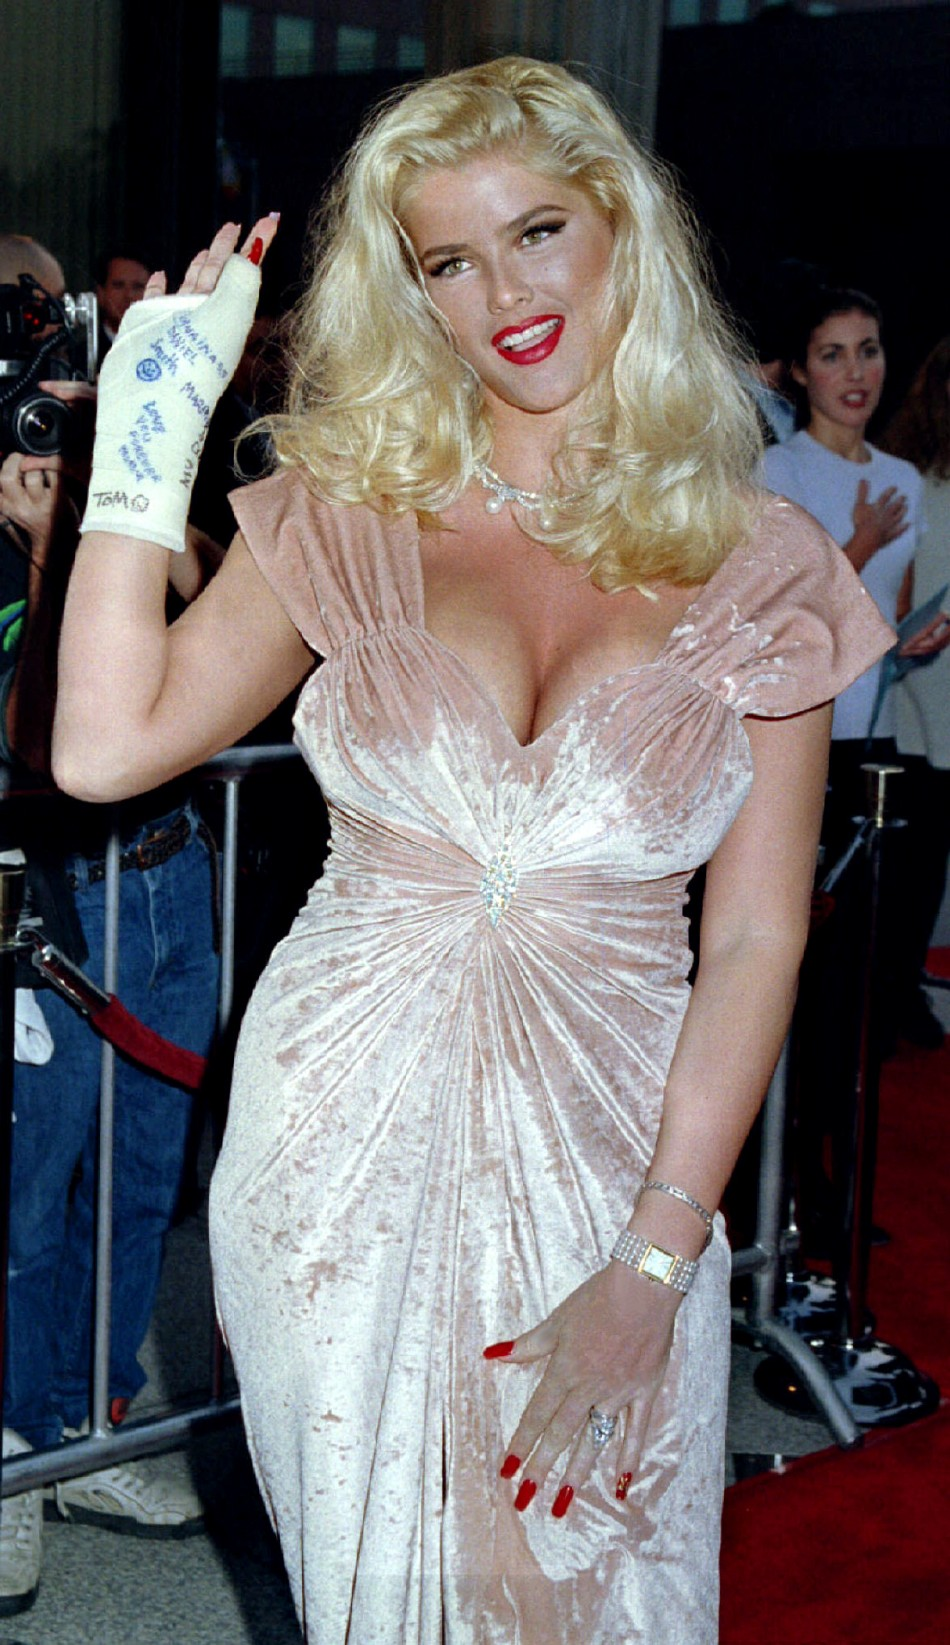 anna nicole smith dead 5 years ago today  timeline of her